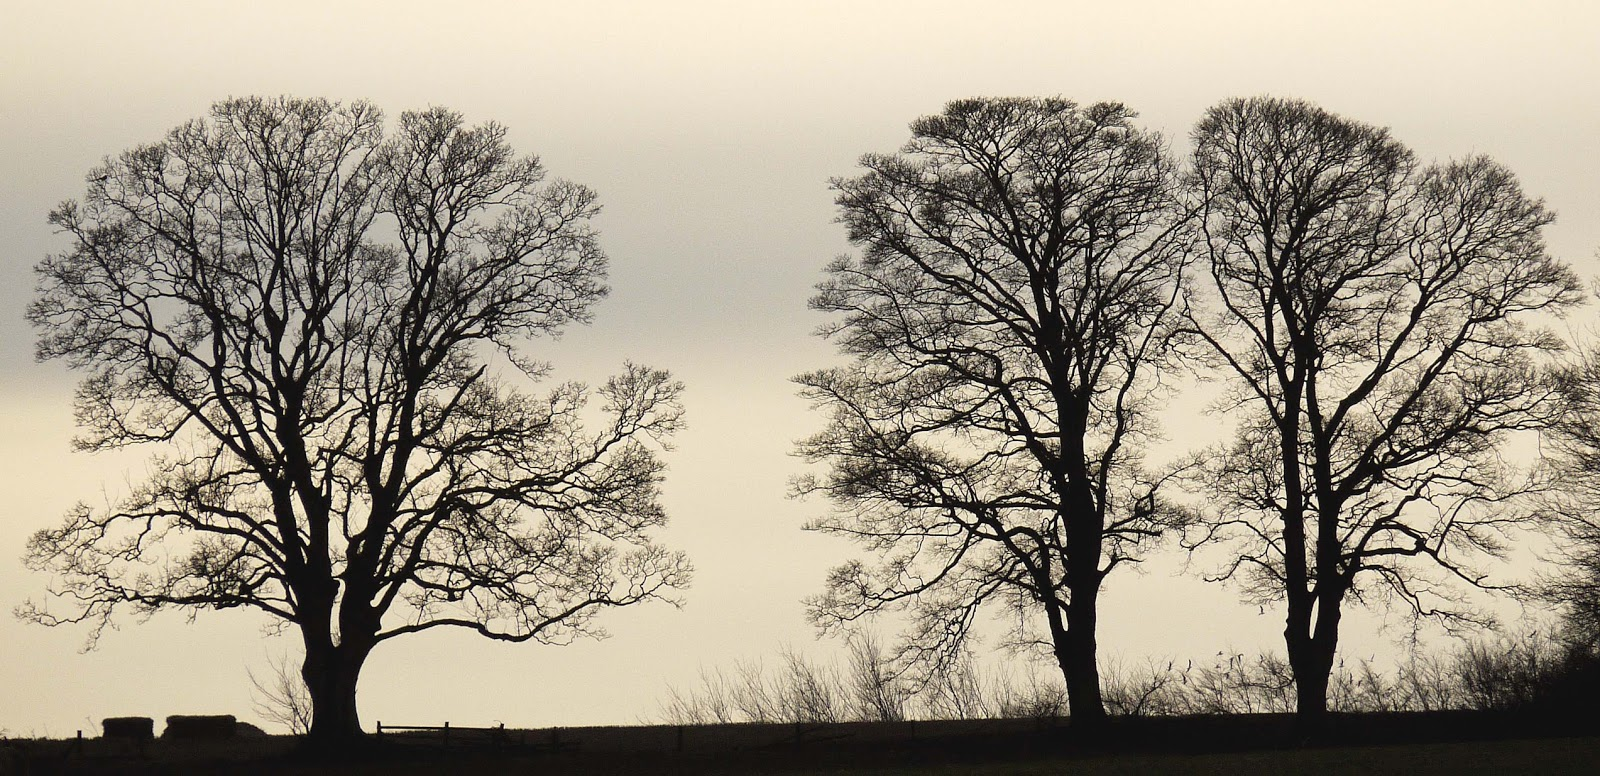 Cabinet of curiosities tree silhouettes in winter - Autumn plowing time all set for winter ...